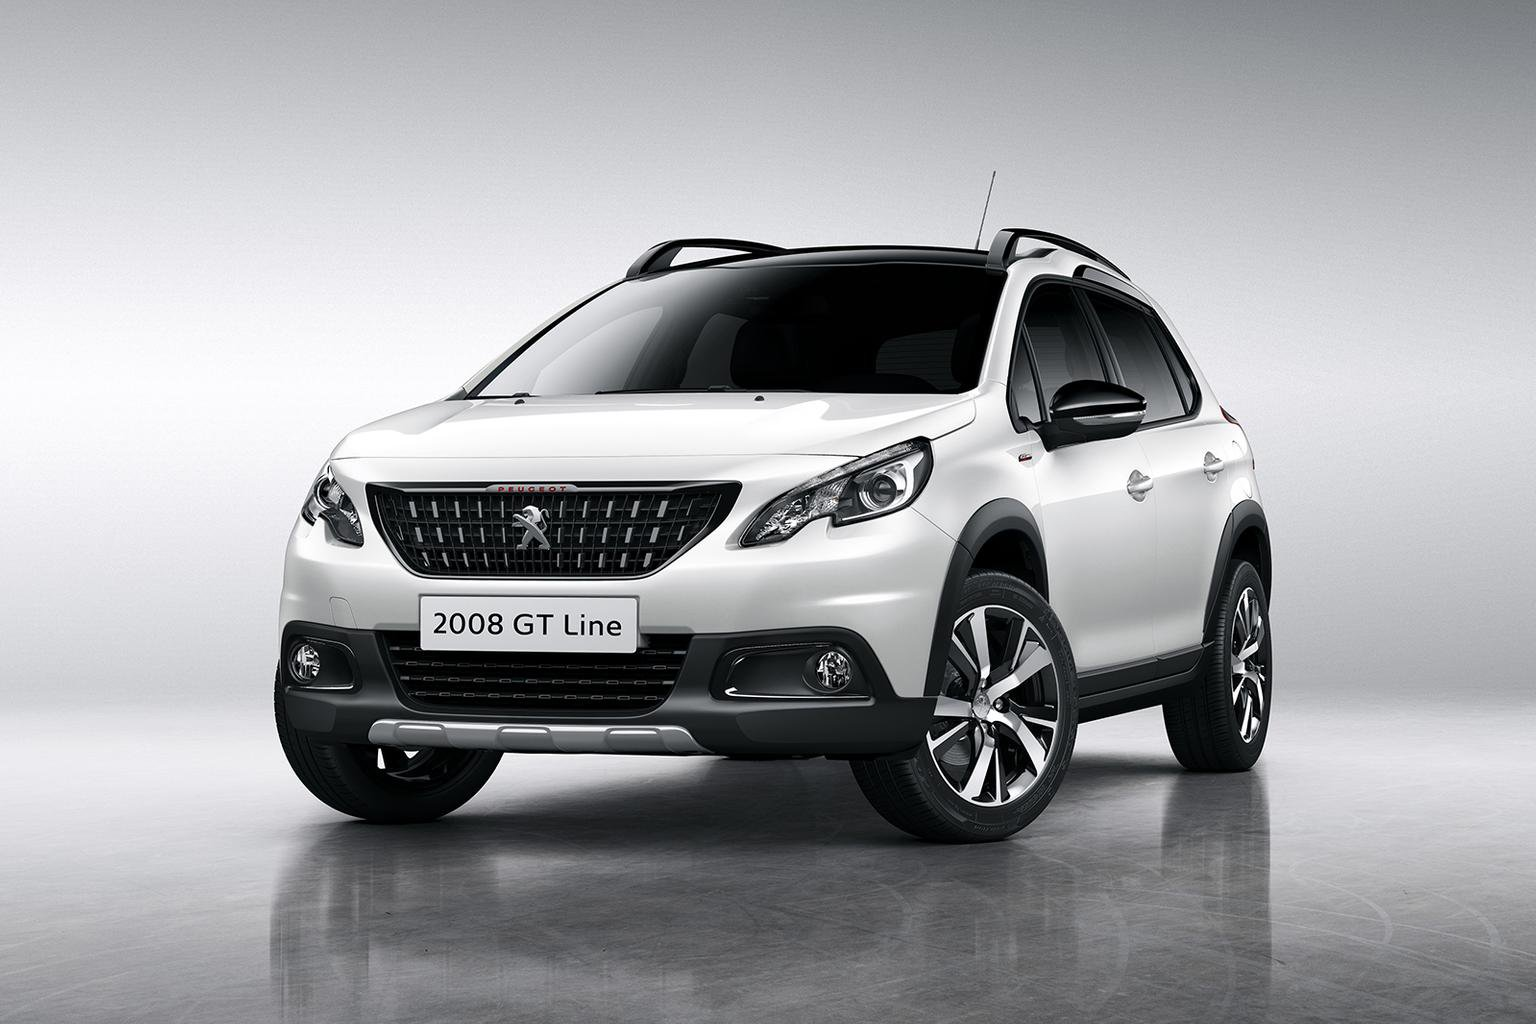 Facelifted Peugeot 2008 revealed